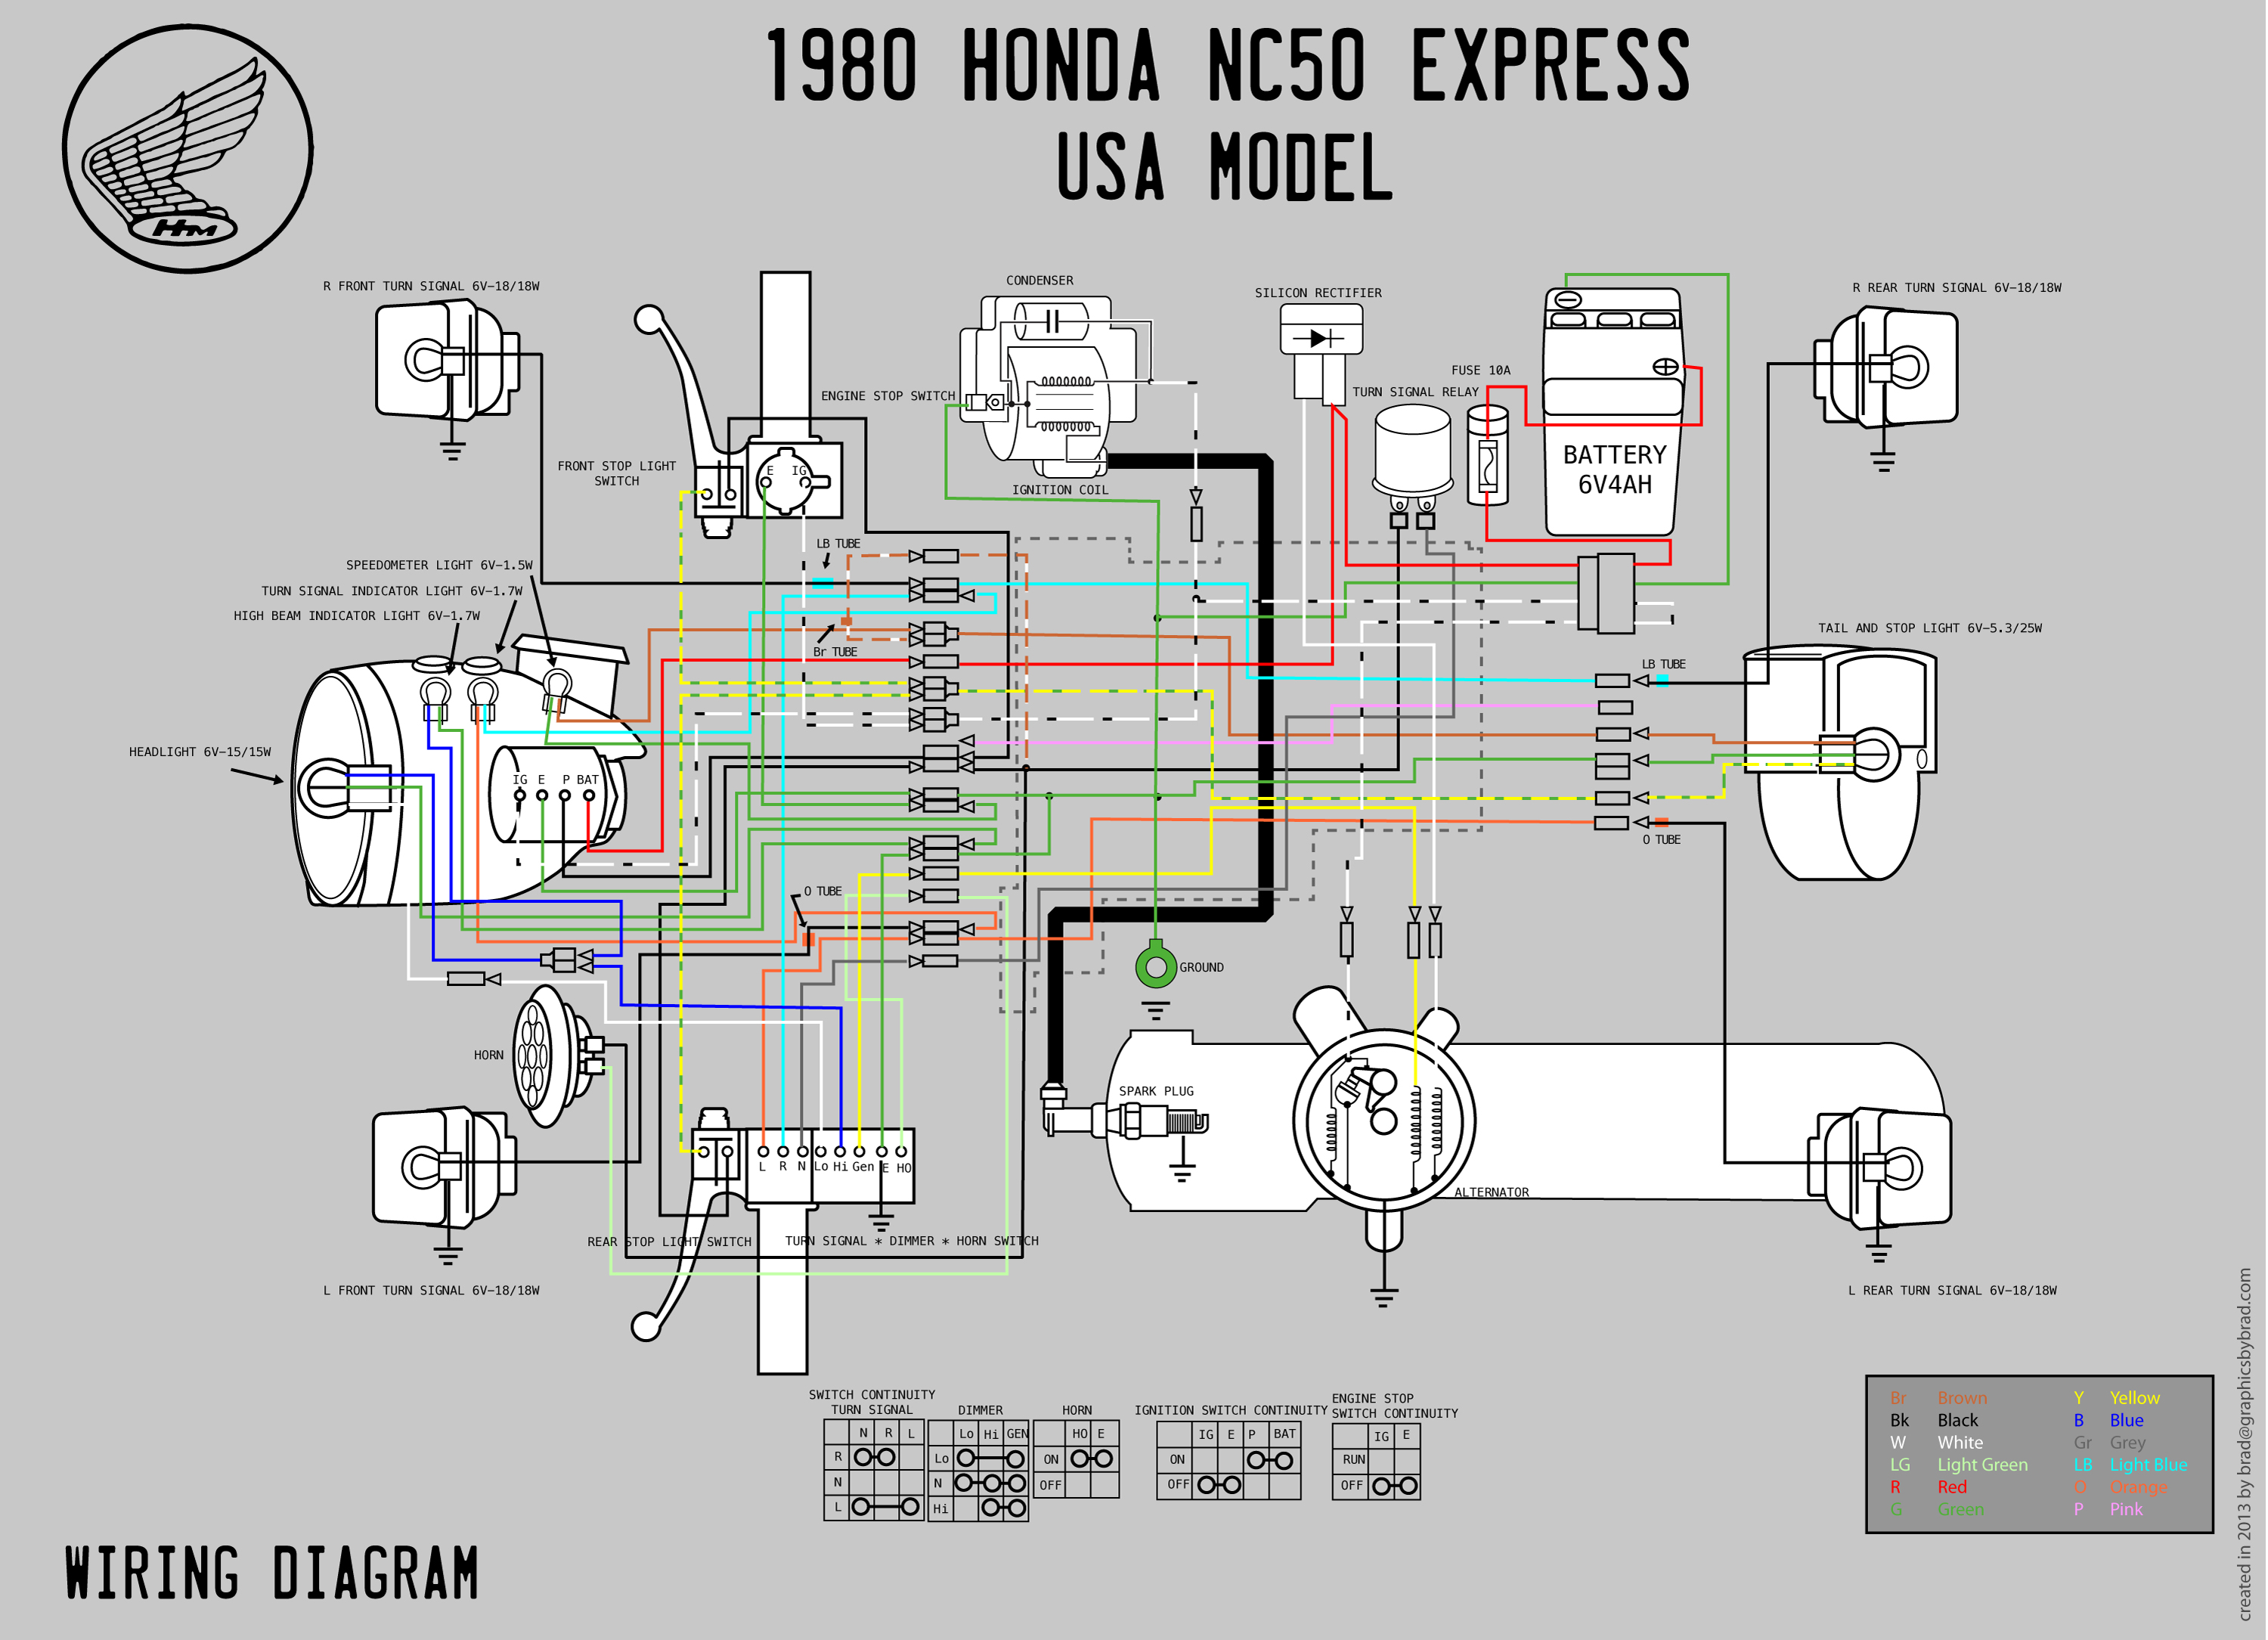 wiring diagrams for 2008 chevy c4500 free download wiring diagrams for a honda 70 free download 1980 honda nc50 wiring diagram - moped wiki